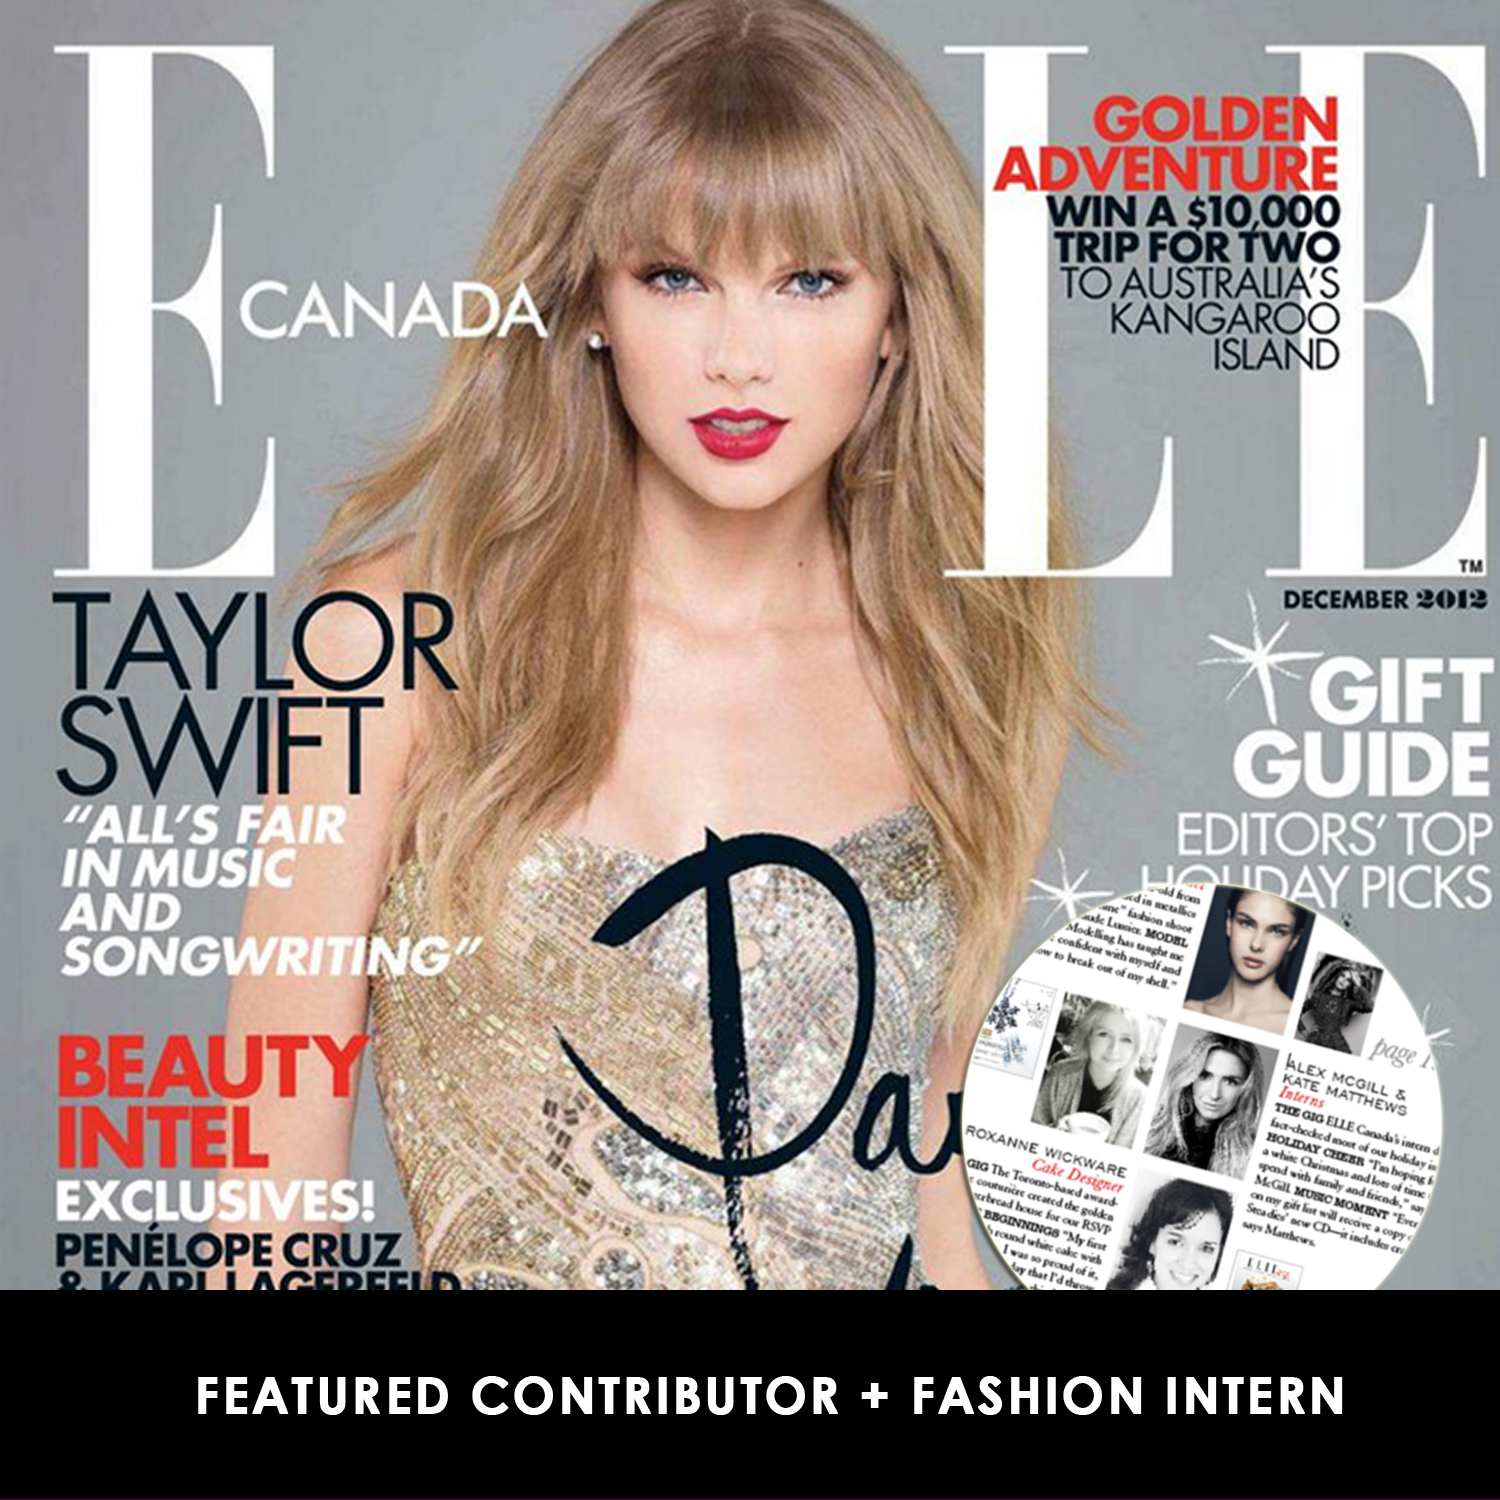 KATE-MATTHEWS-ELLE-MAGAZINE-TAYLOR-SWIFT-WARDROBE-STYLIST-FASHION